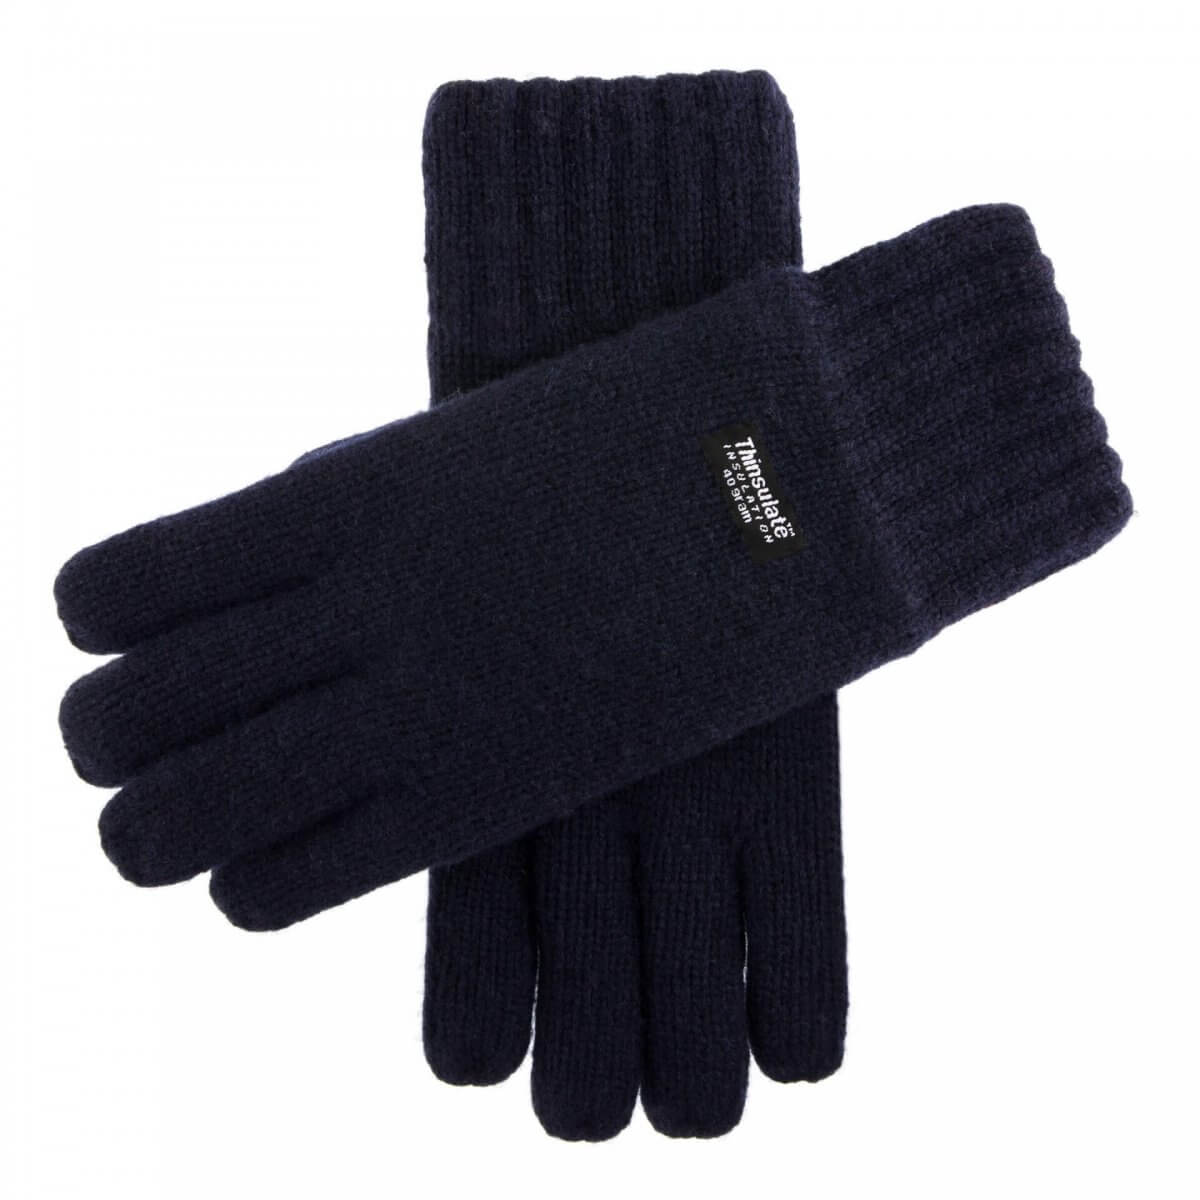 Dents Knitted Gloves with Thinsulate Insulation